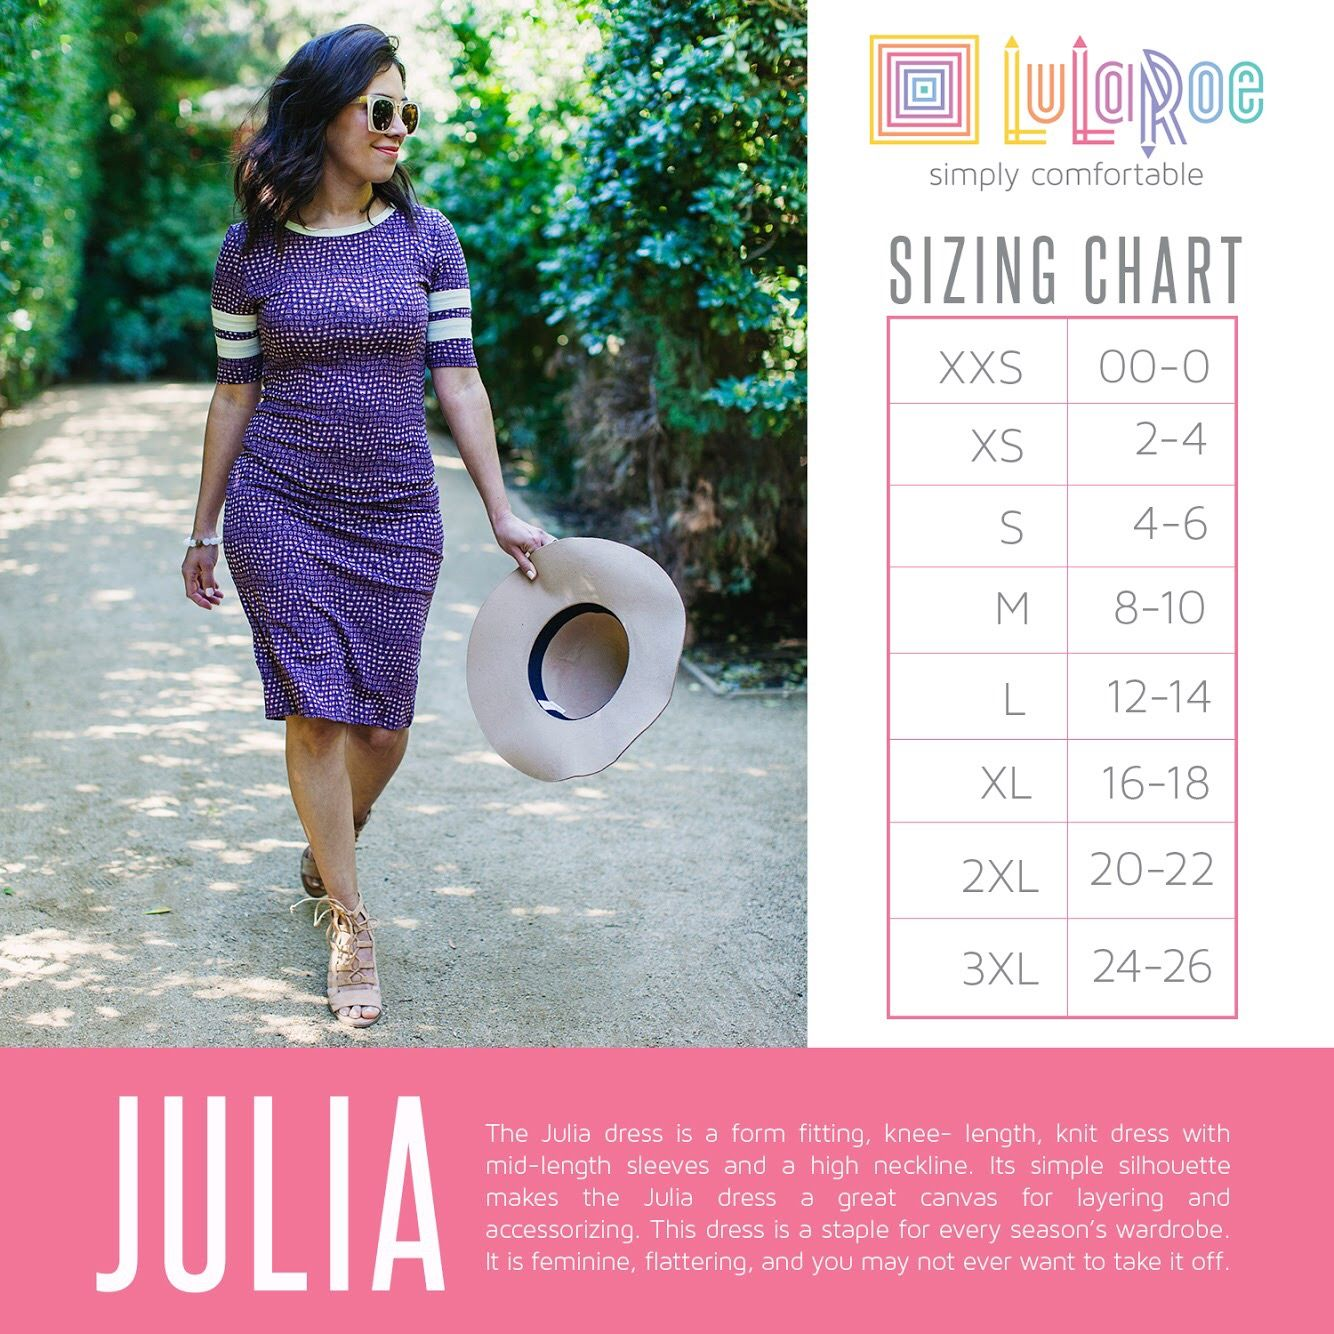 Lularoe darleen dawn and samantha online boutique sizinglularoe julia size chartlularoe dresslularoe also sizing chart with price charts rh pinterest